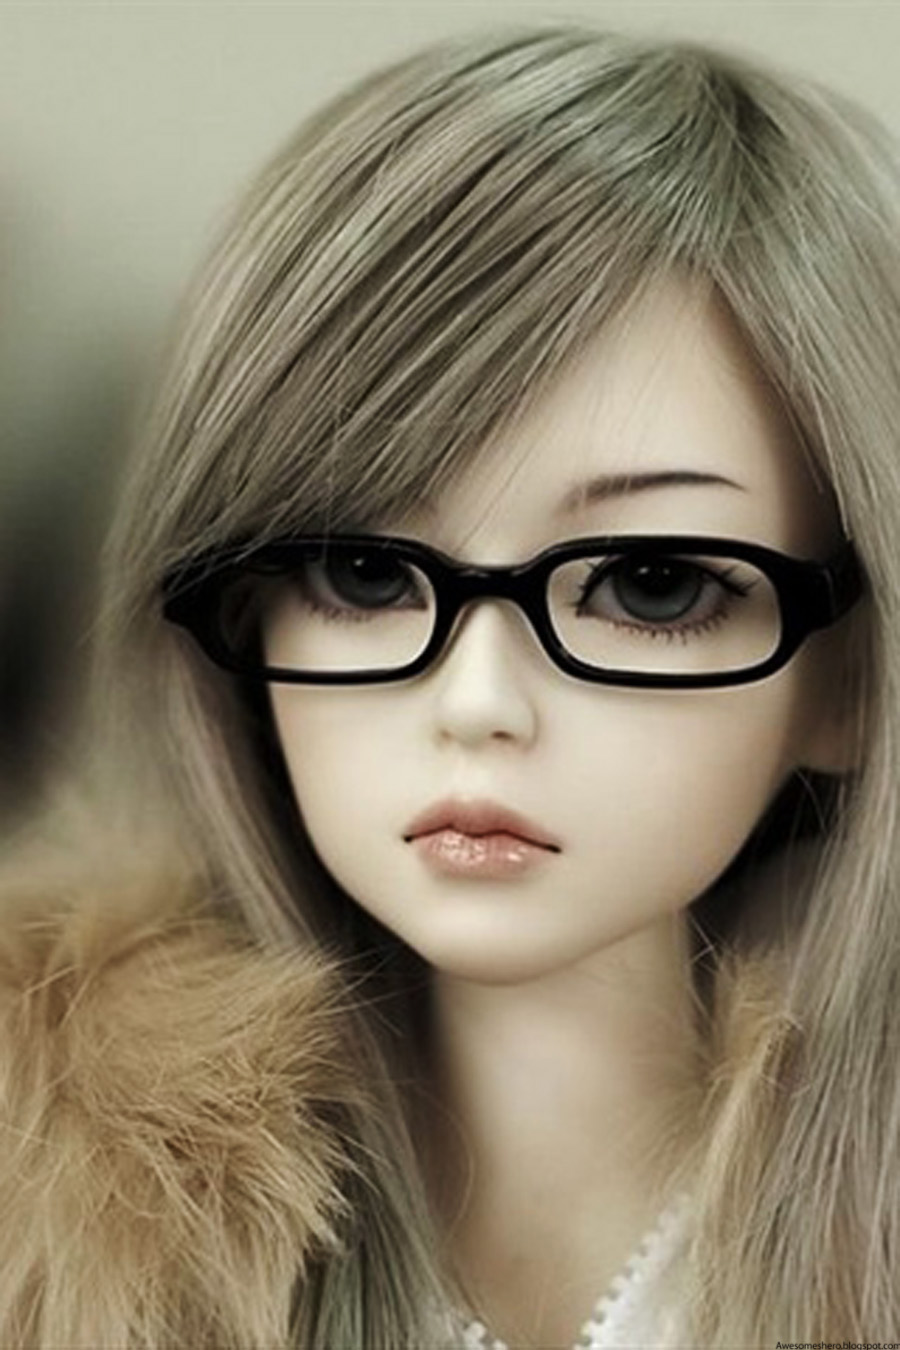 17+ images about Beautiful Dolls on Pinterest | Beautiful